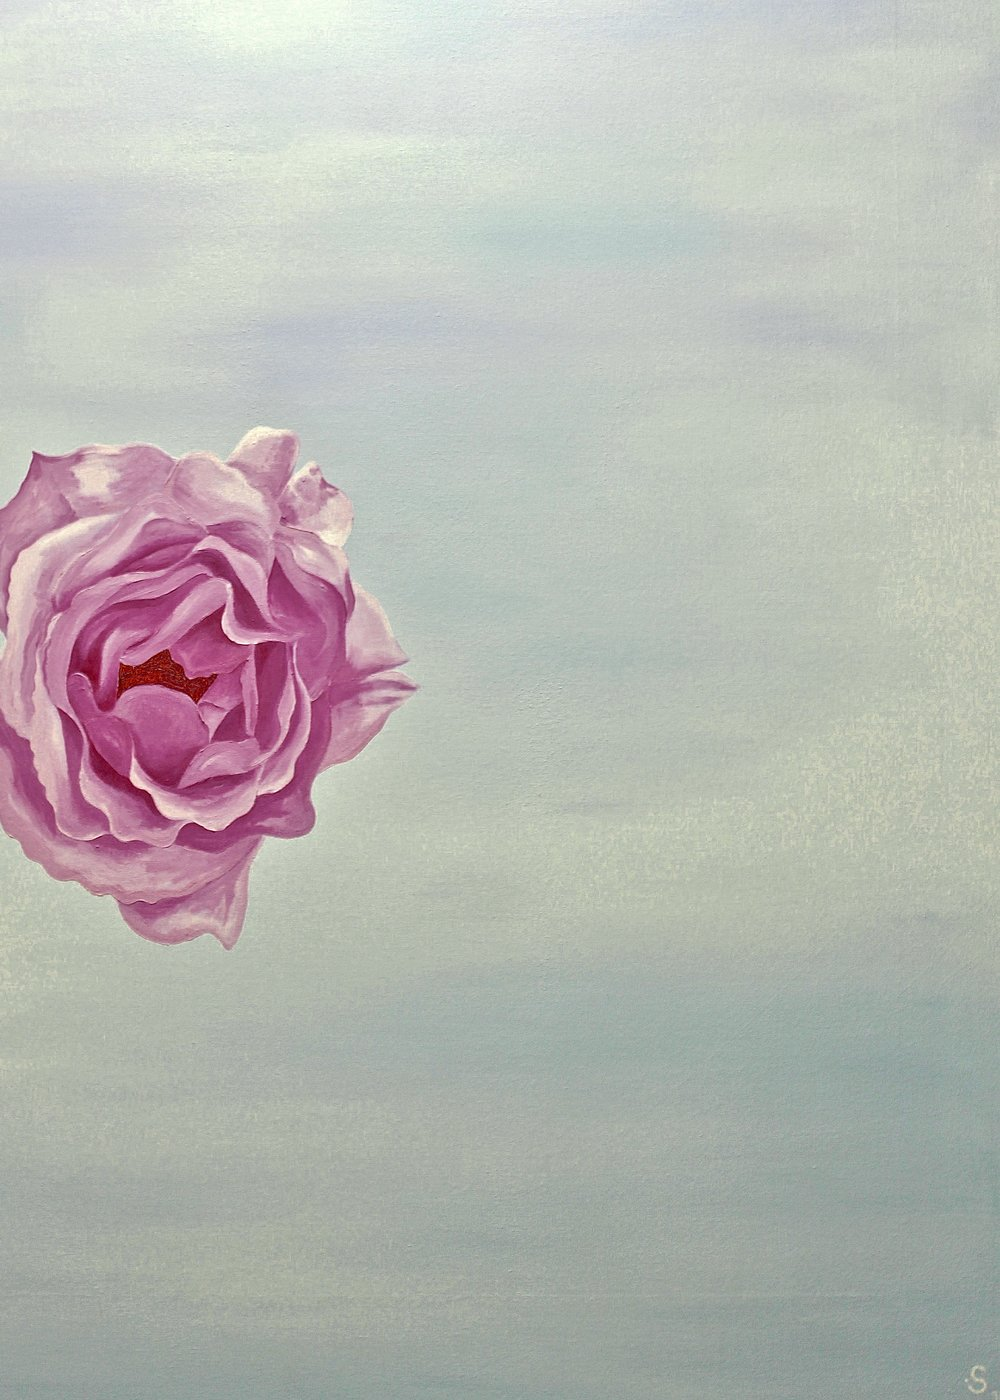 The Rose -  2010 oil on canvas 91cm x 122cm